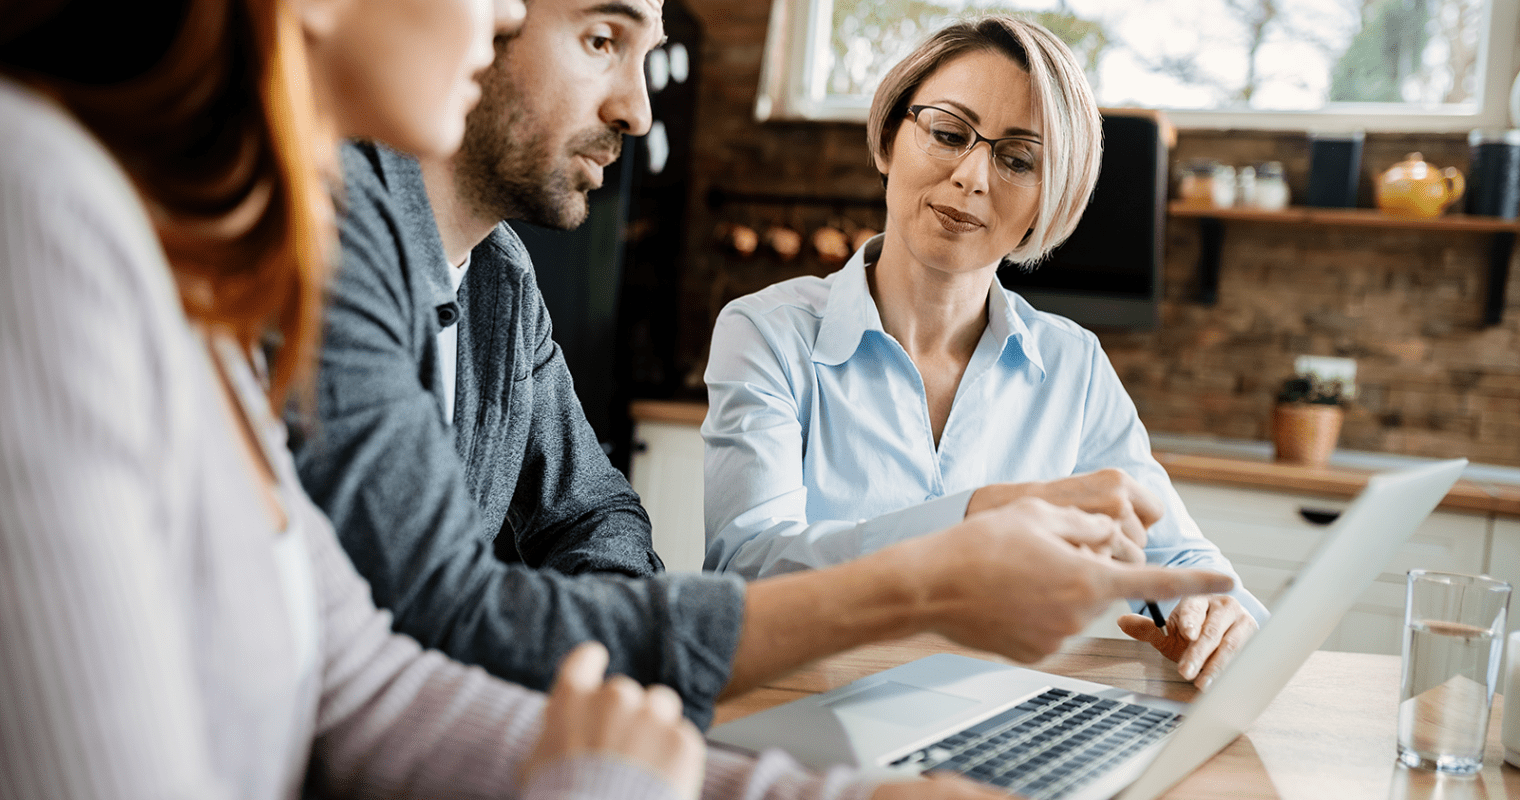 Does My Small Business Need E&O Insurance